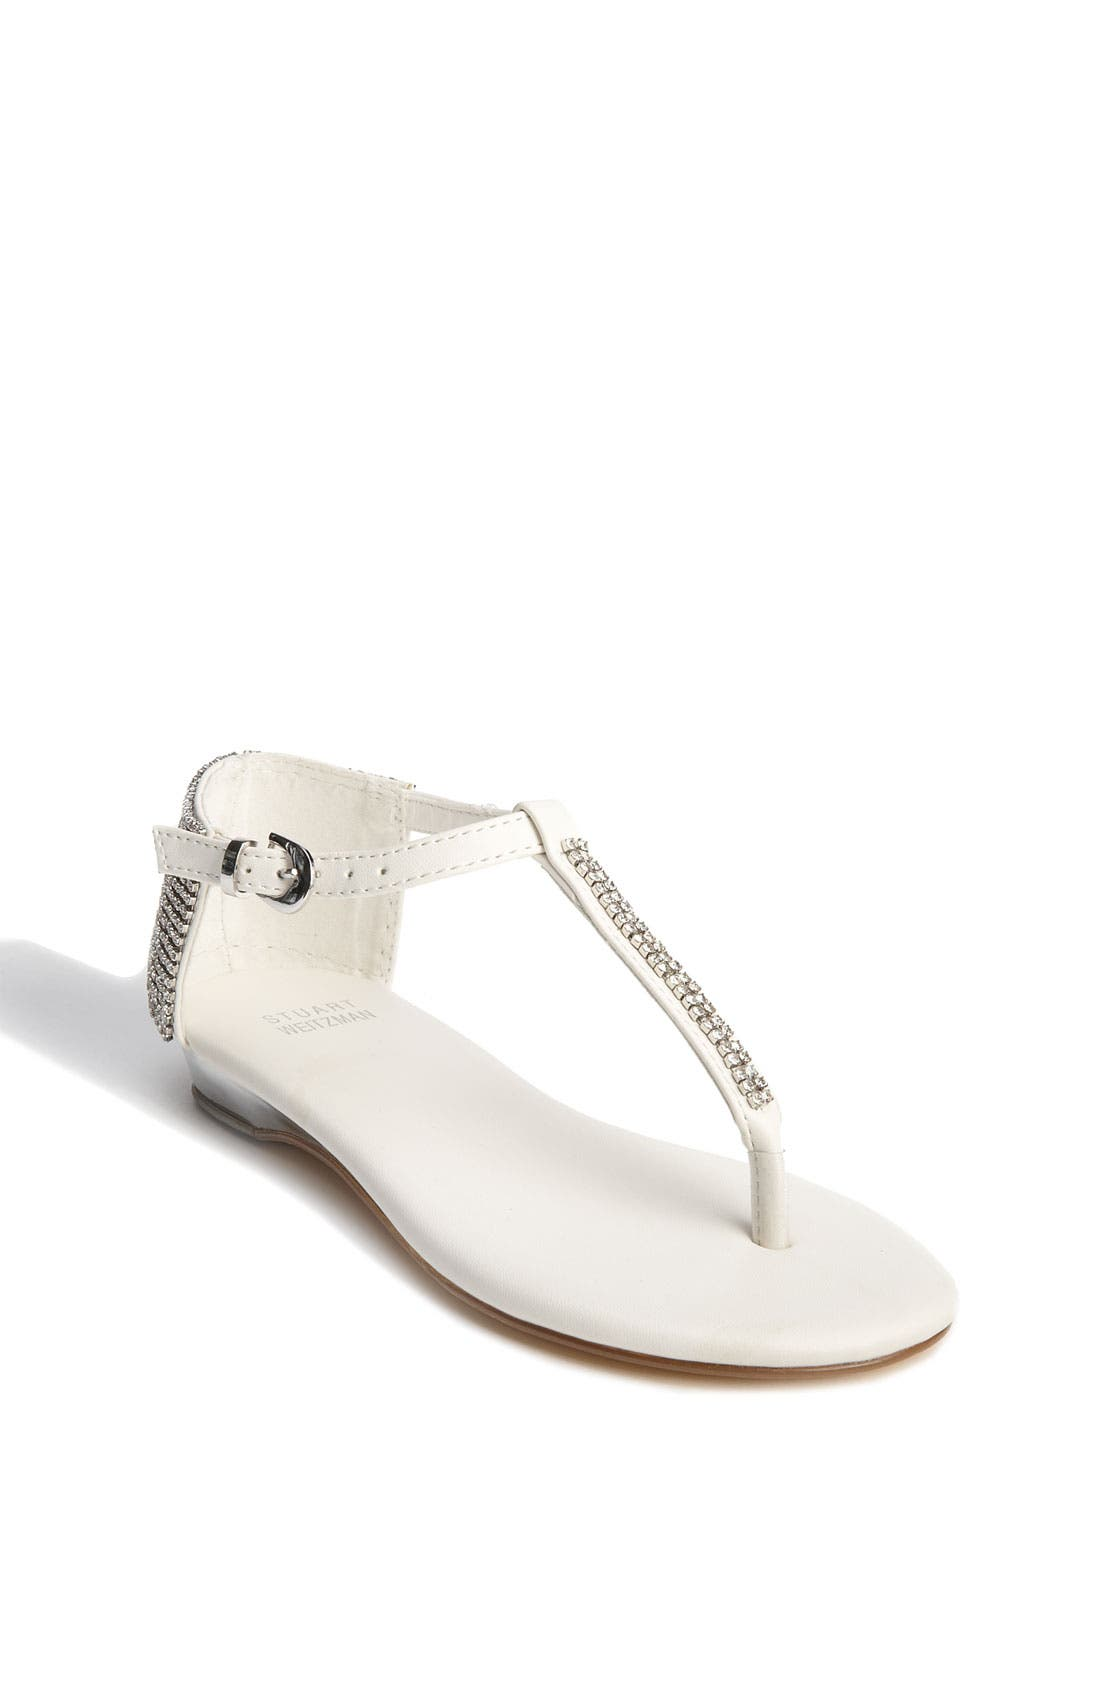 Main Image - Stuart Weitzman 'Bravo' Sandal (Toddler, Little Kid & Big Kid)